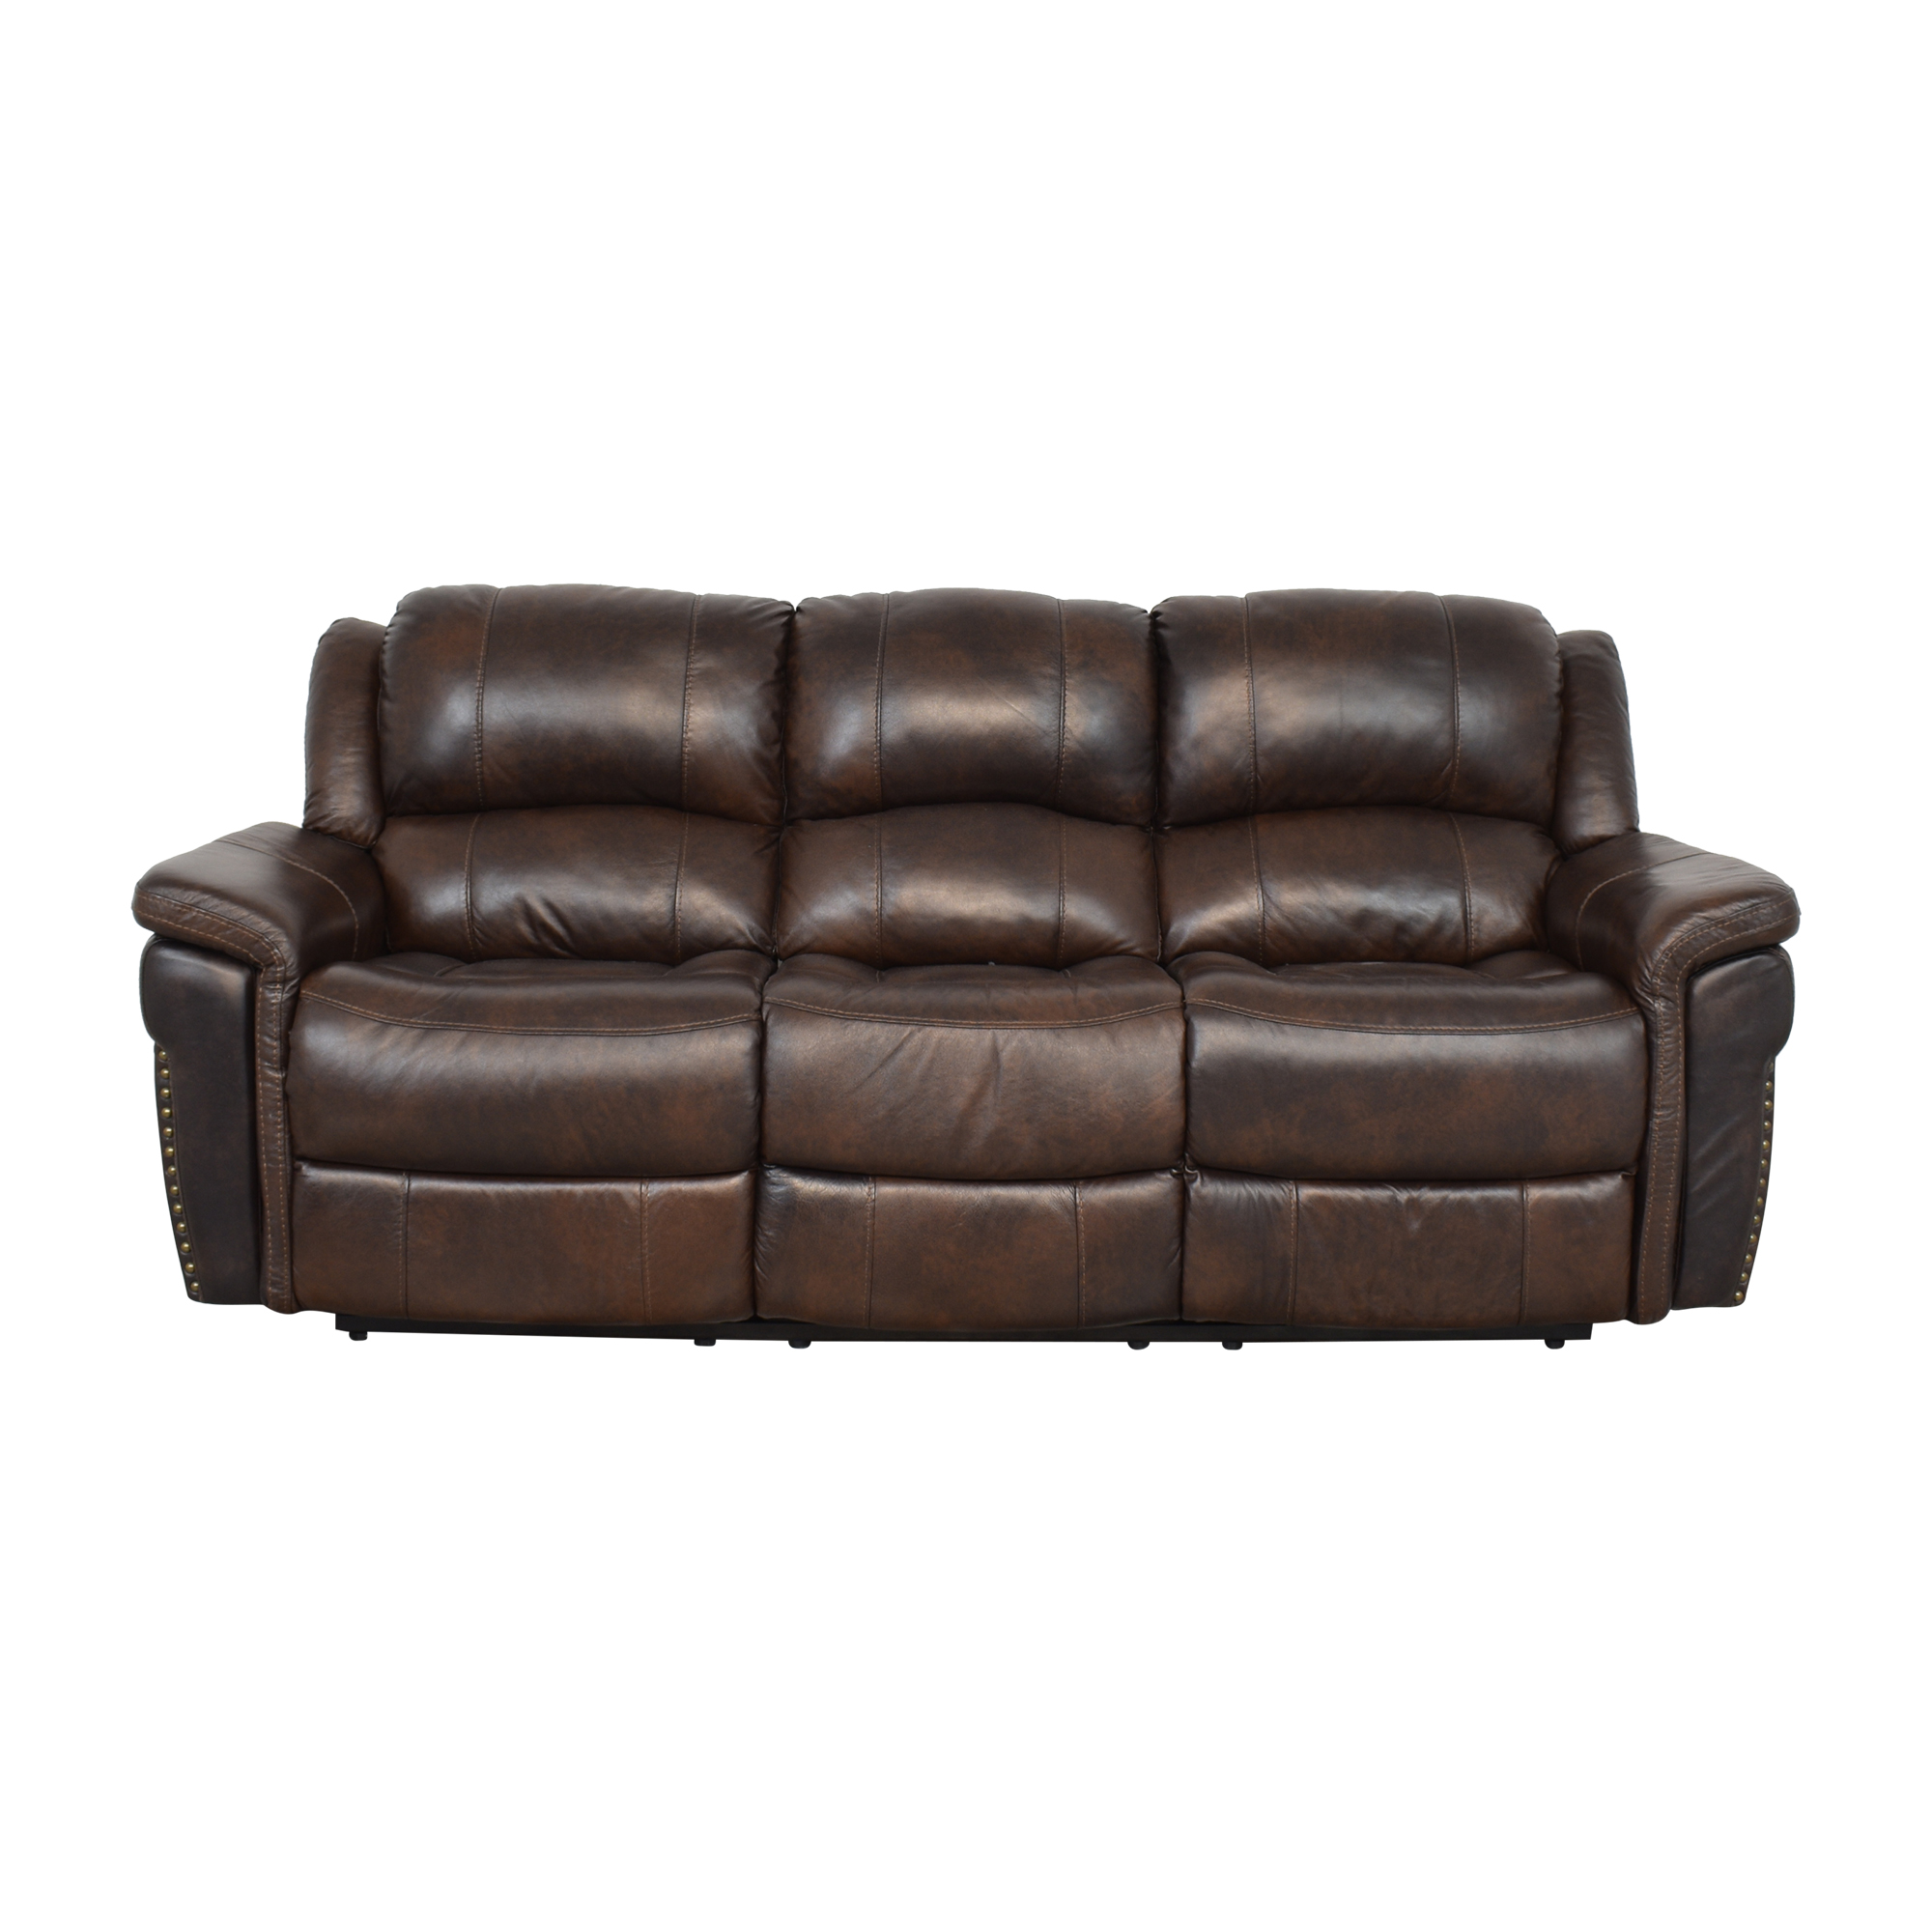 Delancey Street Furniture Recliner Sofa discount